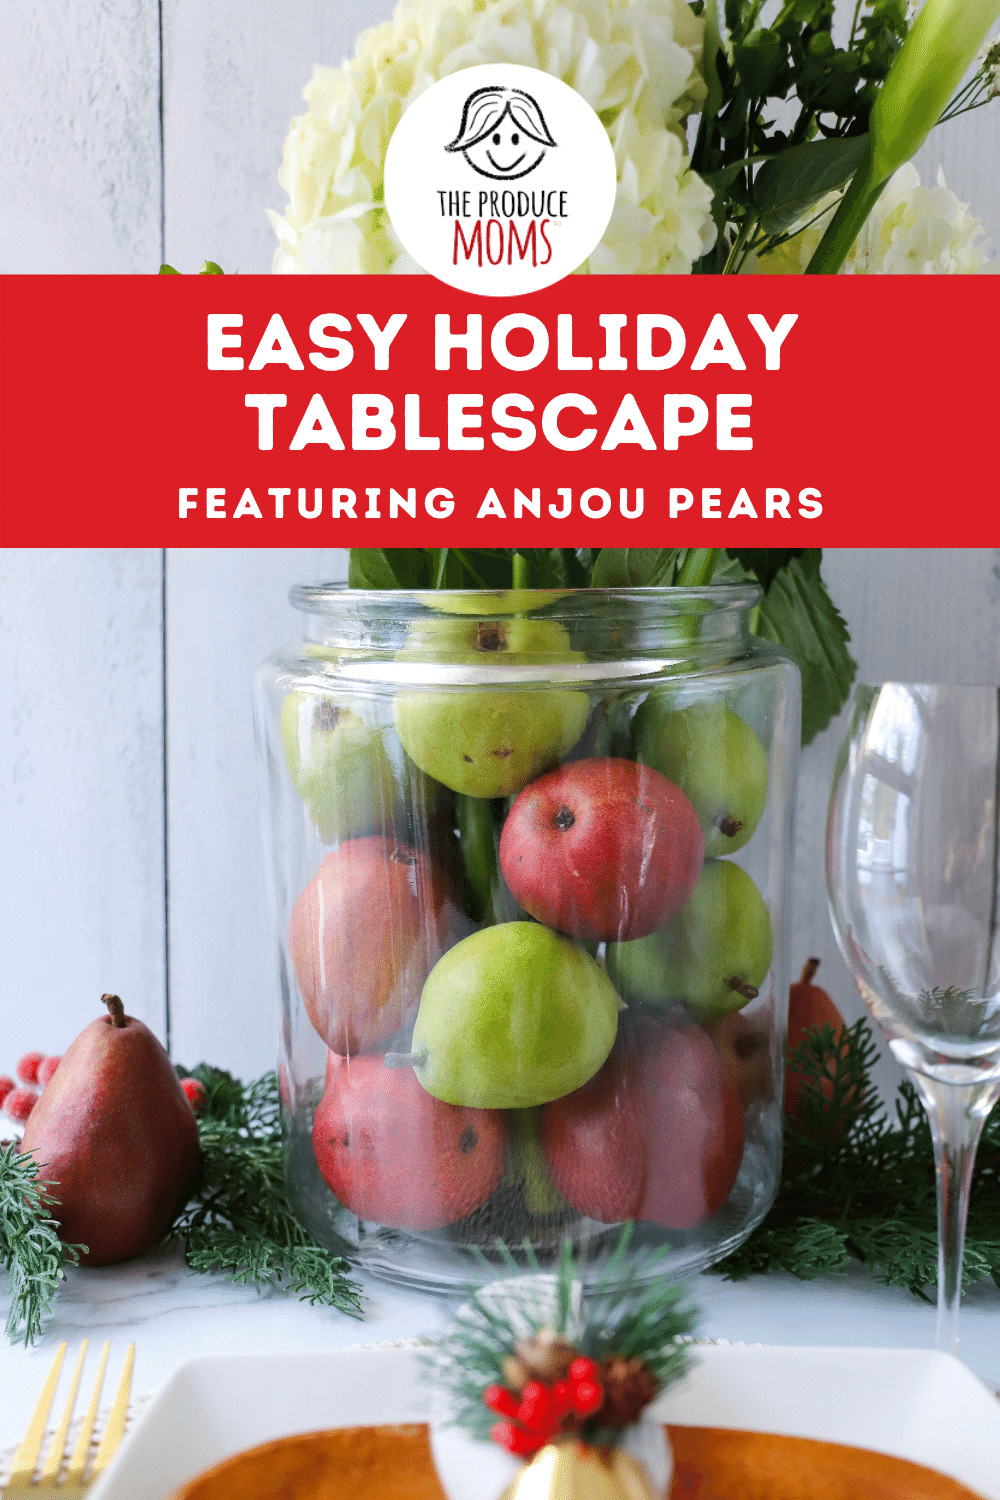 Easy Holiday Tablescape featuring Pears